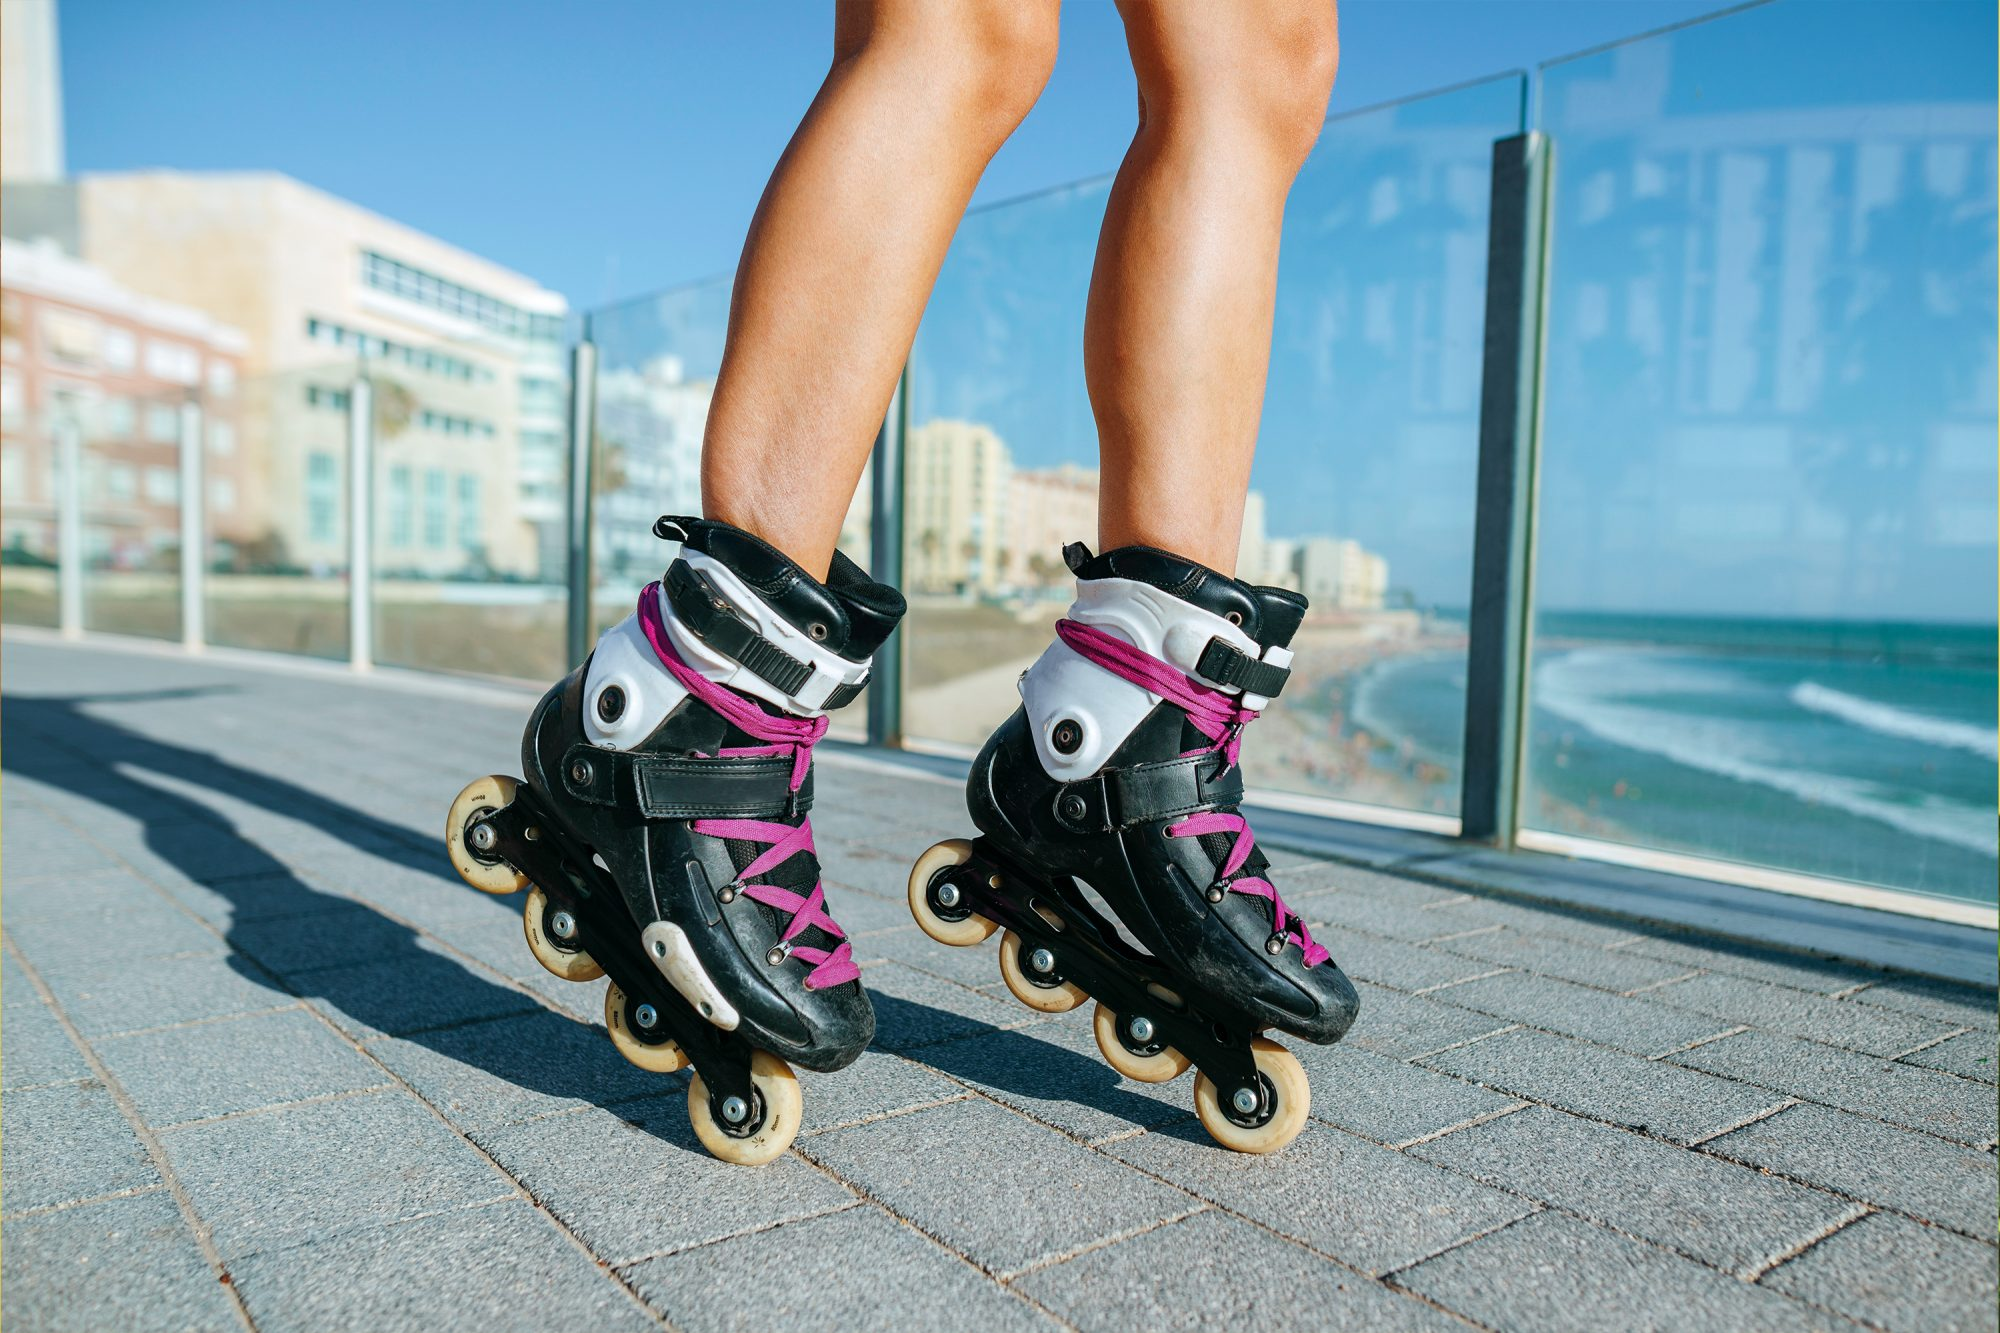 Rollerblading inline skating health and wellness benefits, safety tips, beginner tips: woman wearing inline skates